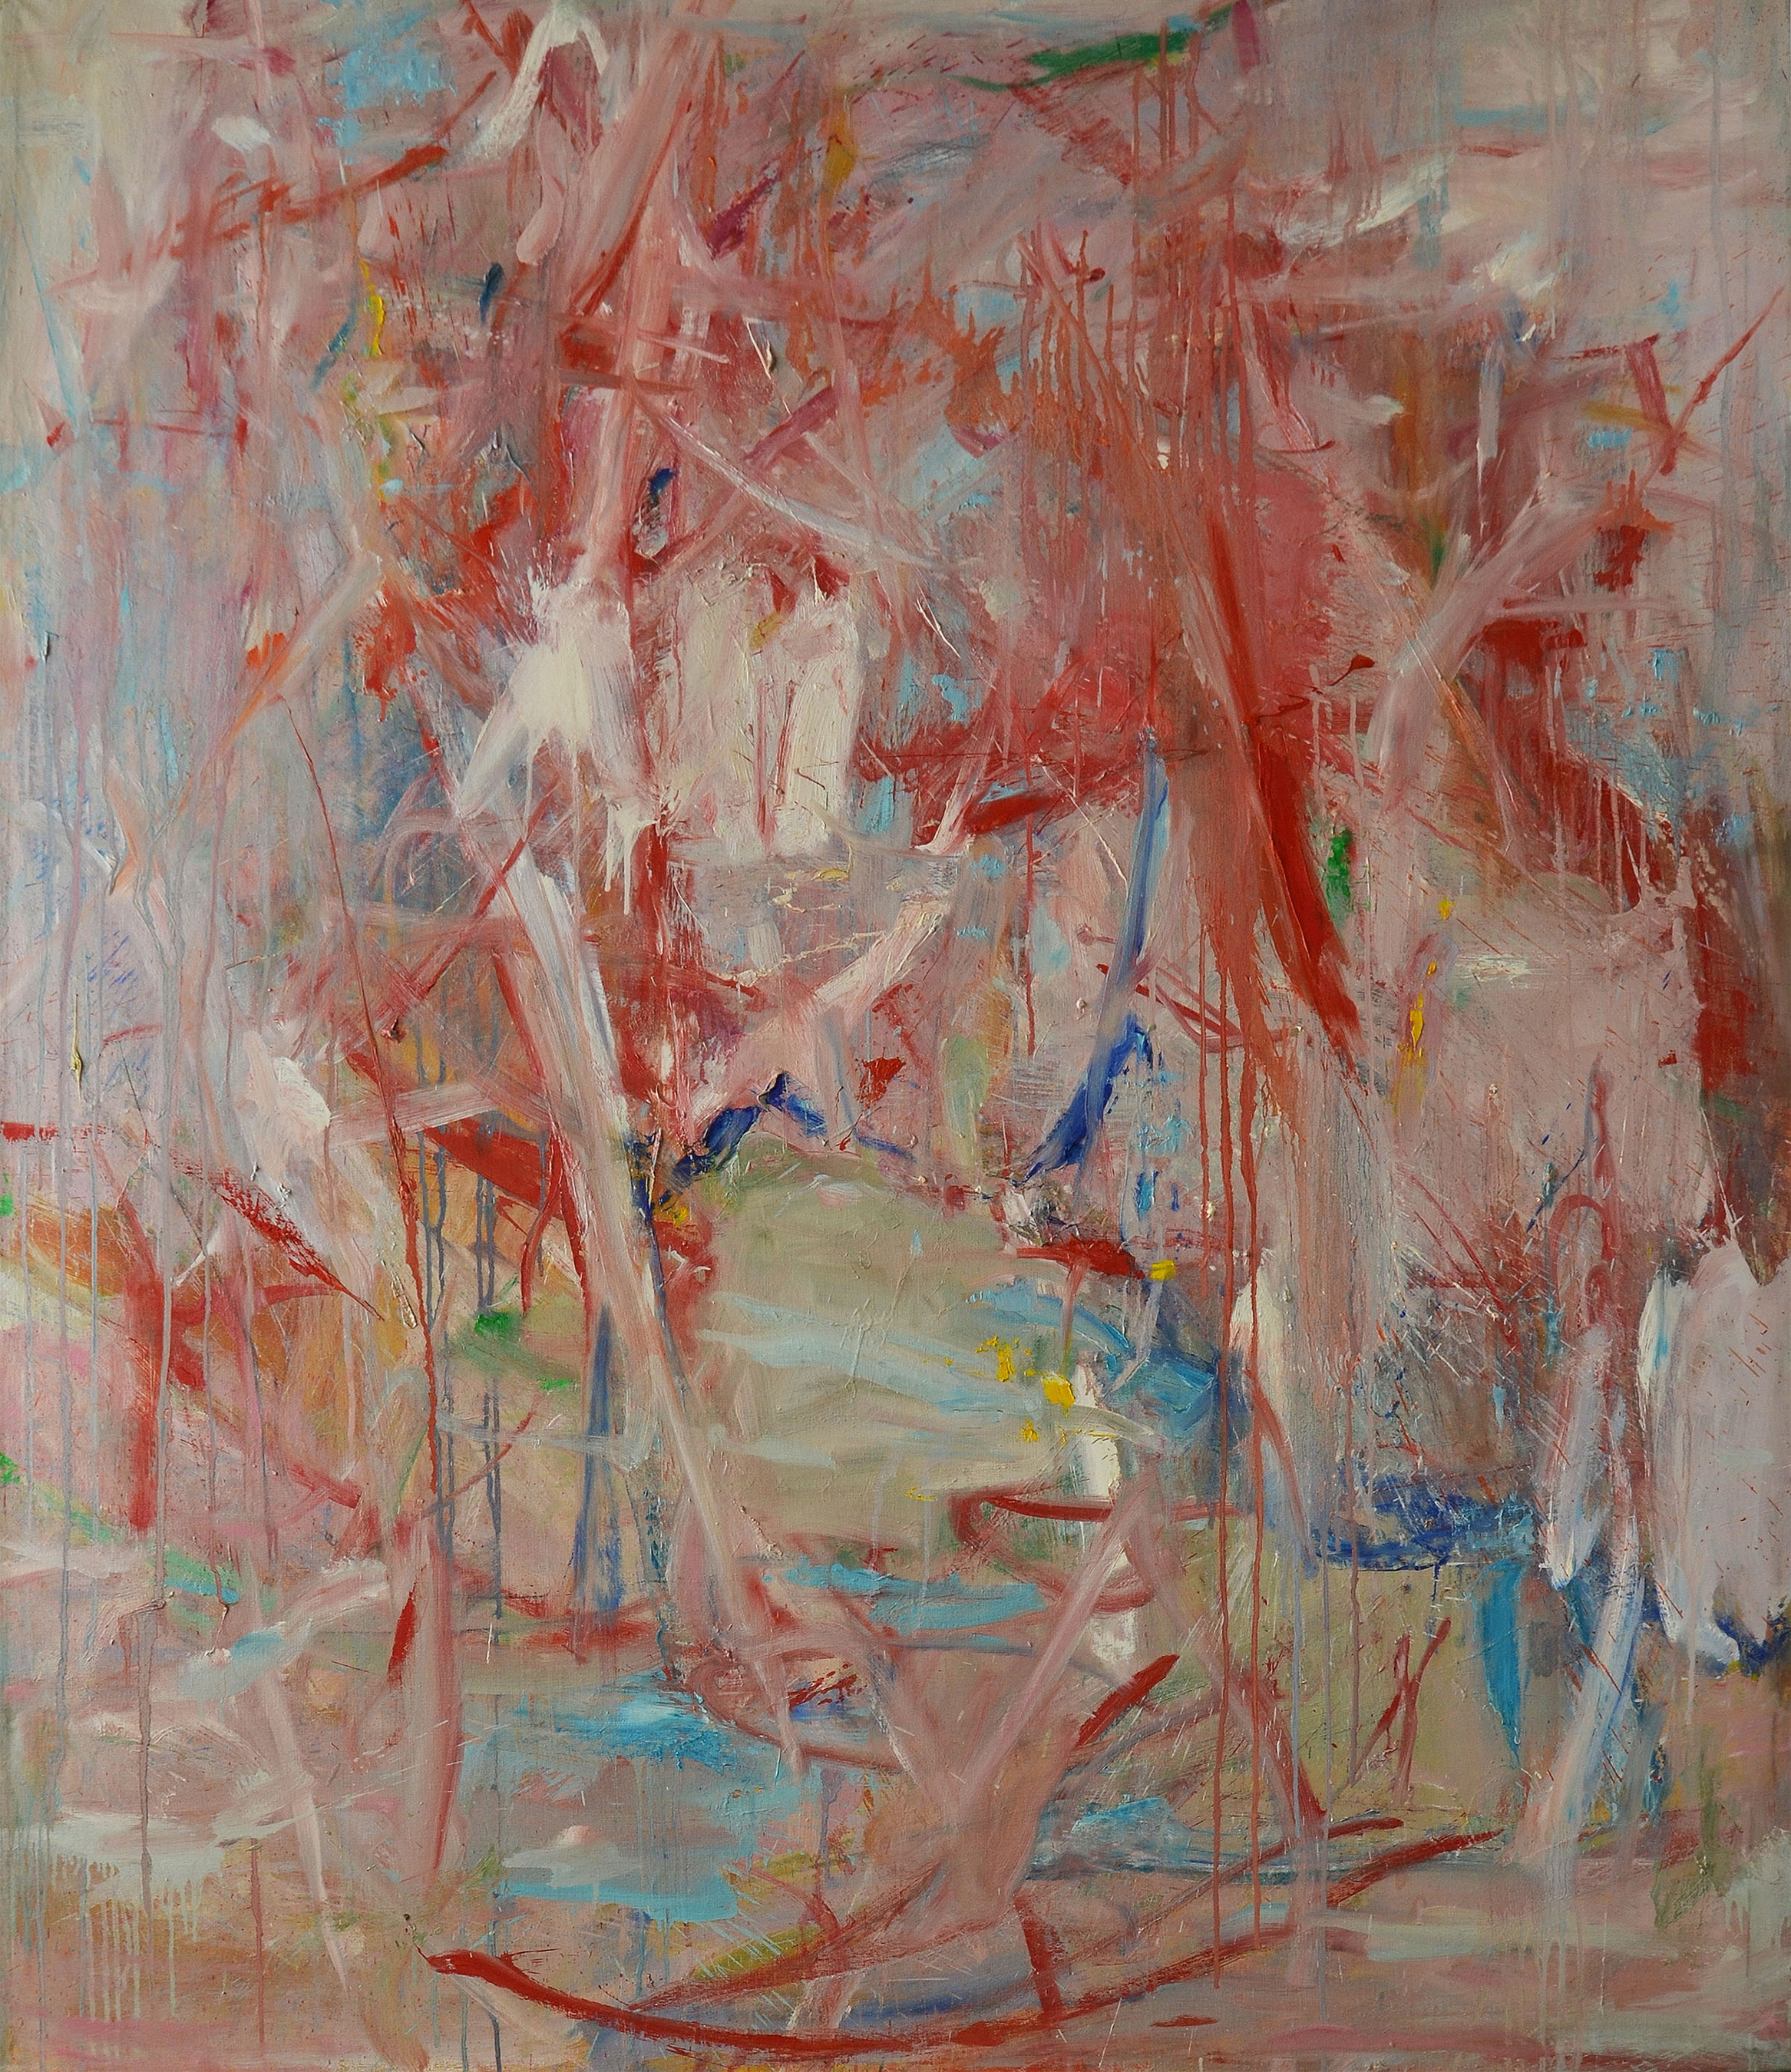 Untitled ,  Oil on canvas, c. 1959, 72 x 60 inches